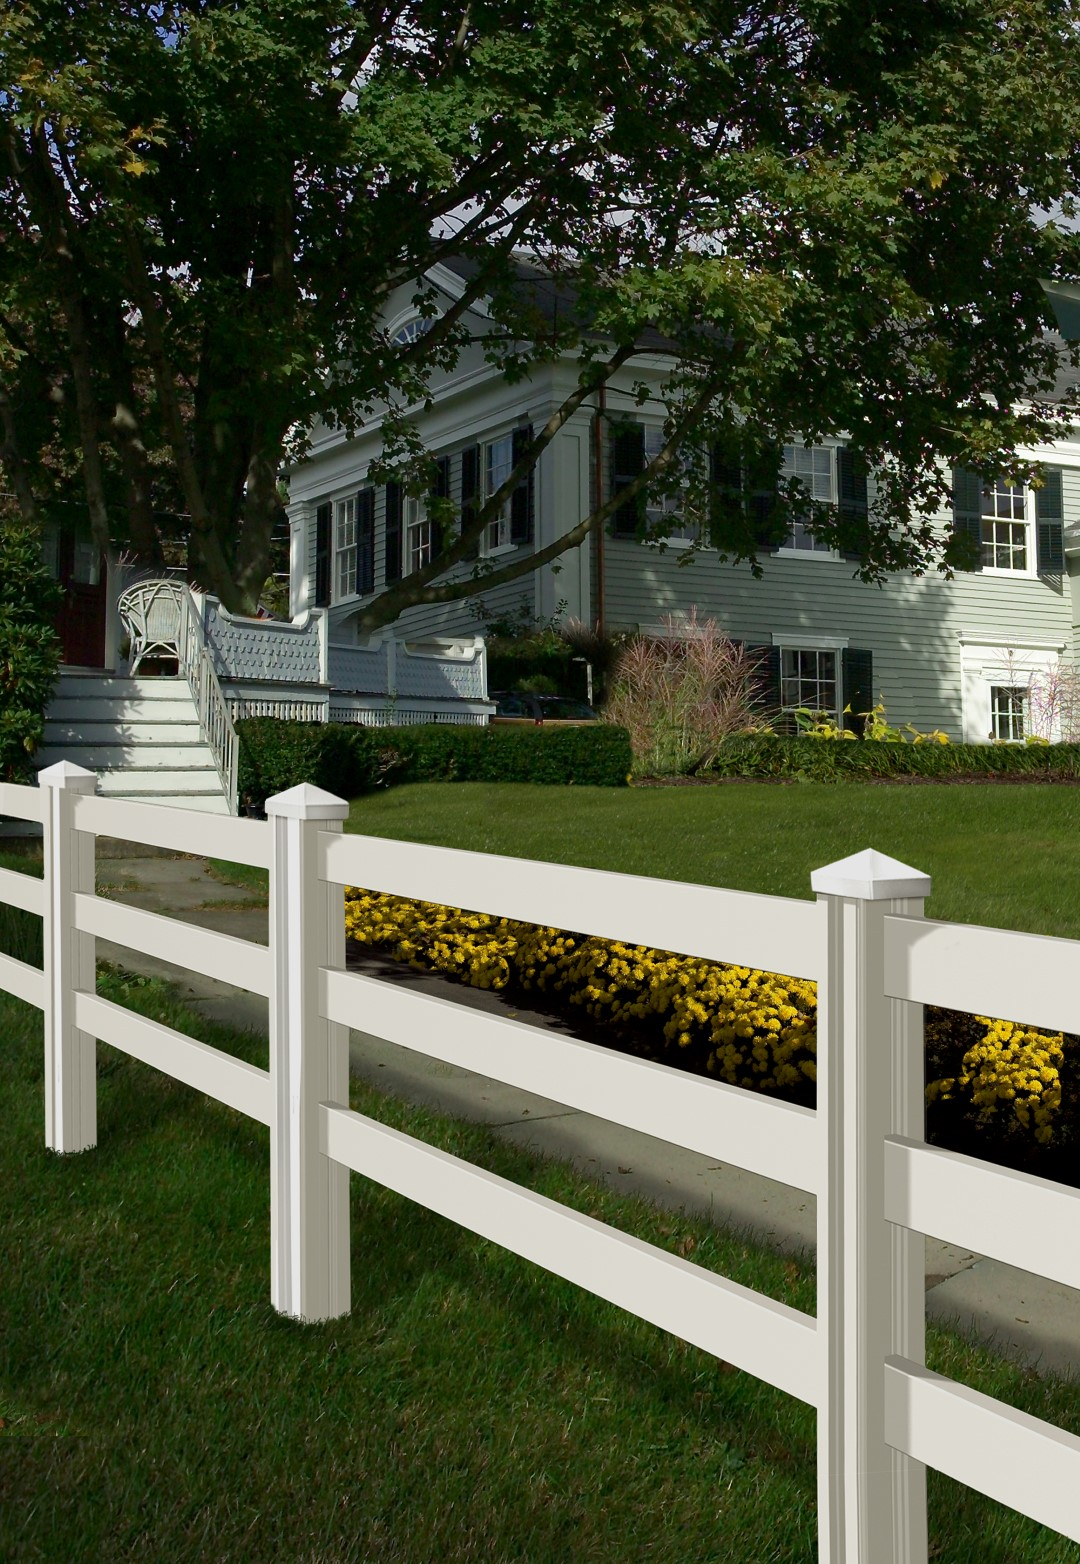 3 Rail Vinyl Fence With Posts Wambam Fence